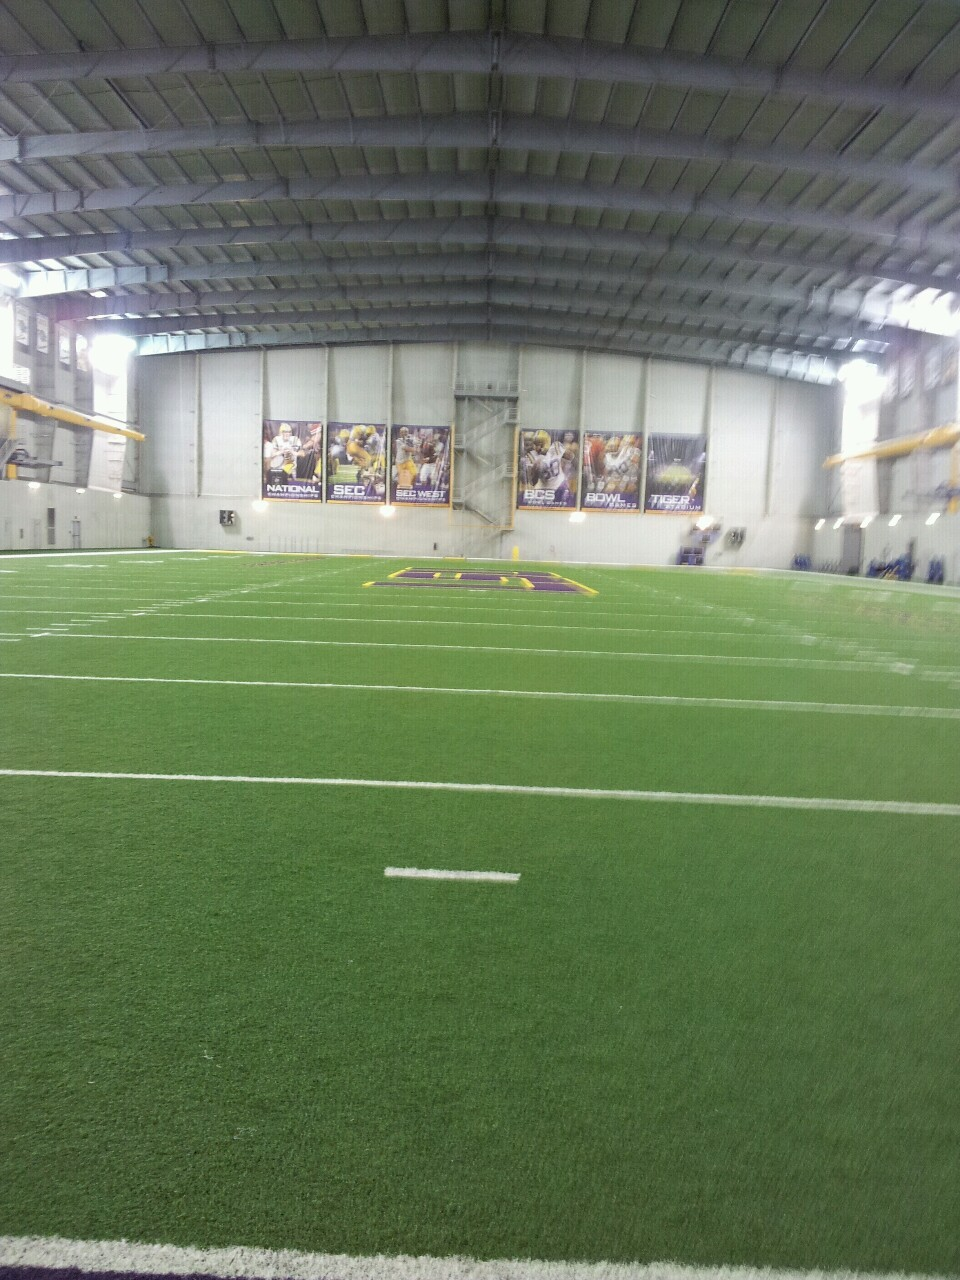 I was able to walk around the indoor practice facility yesterday during player interviews.